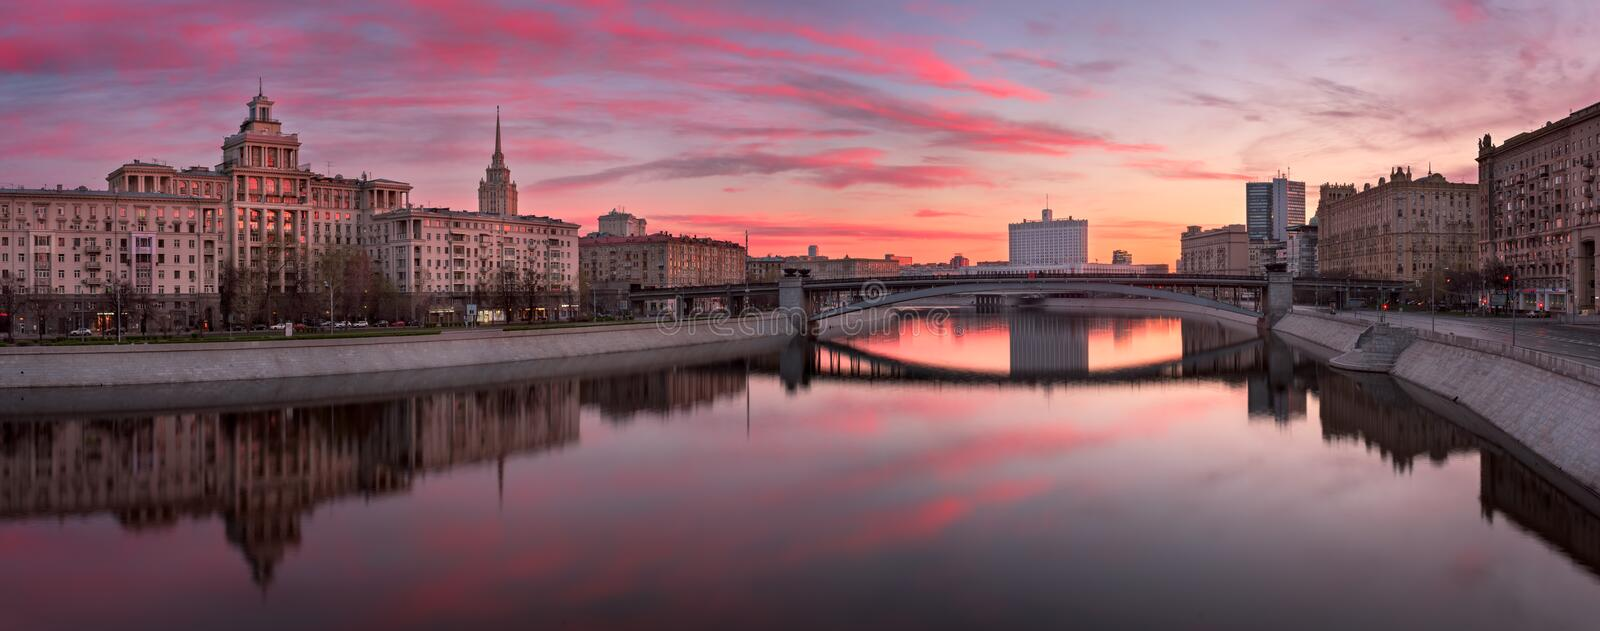 Panorama of Moskva River Embankment and White House in the Morning, Moscow, Russia stock photos